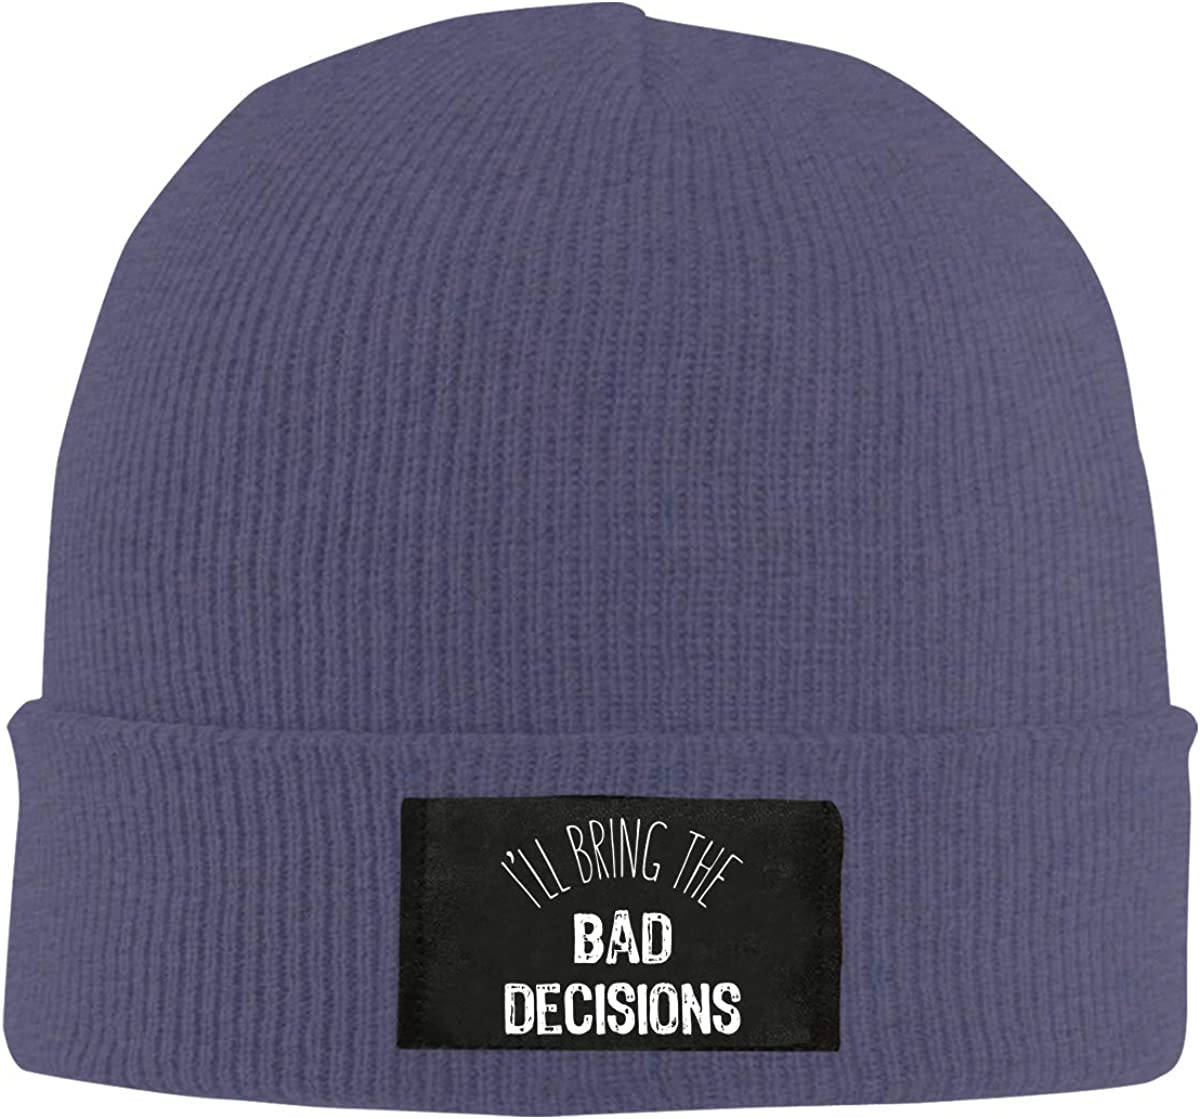 BF5Y6z/&MA Mens and Womens Ill Bring Bad Decisions Knit Cap 100/% Acrylic Warm Skiing Cap